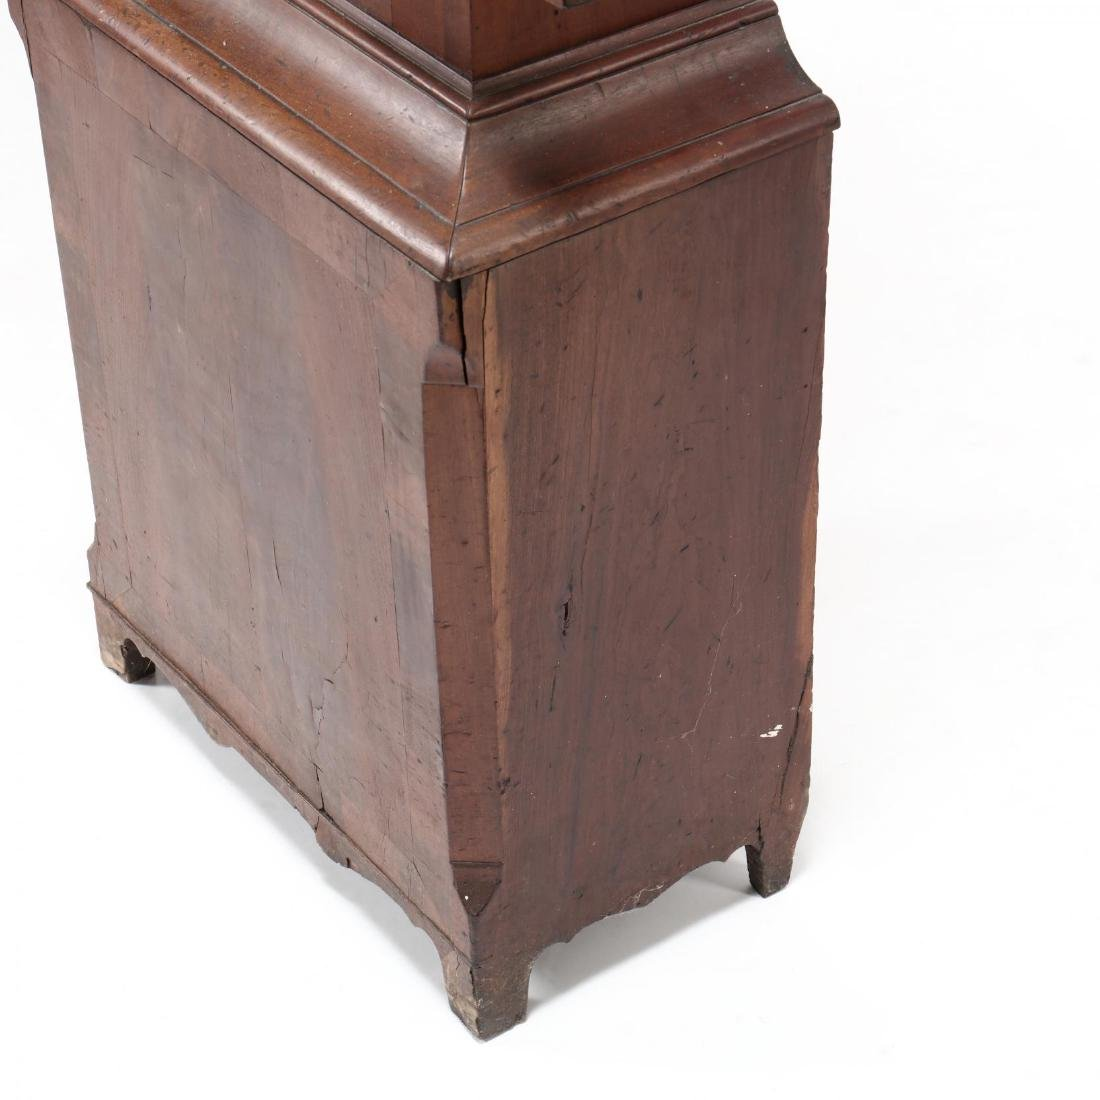 Southern Federal Tall Case Cherry Clock - 7